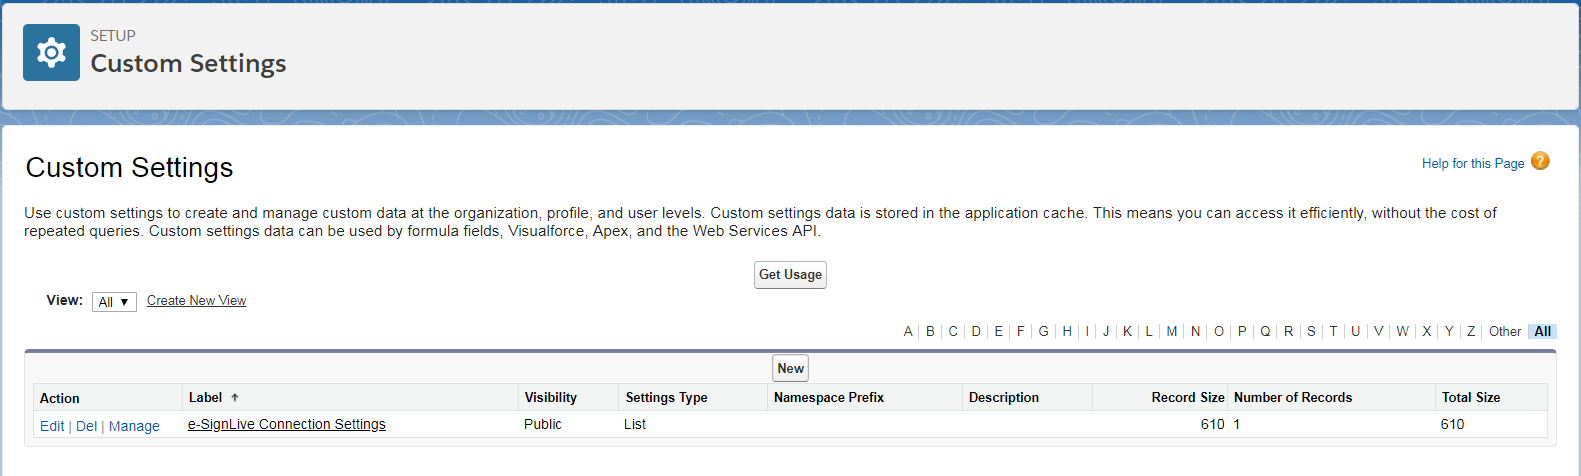 eSignLive How To: Creating a Simple Visualforce Page App